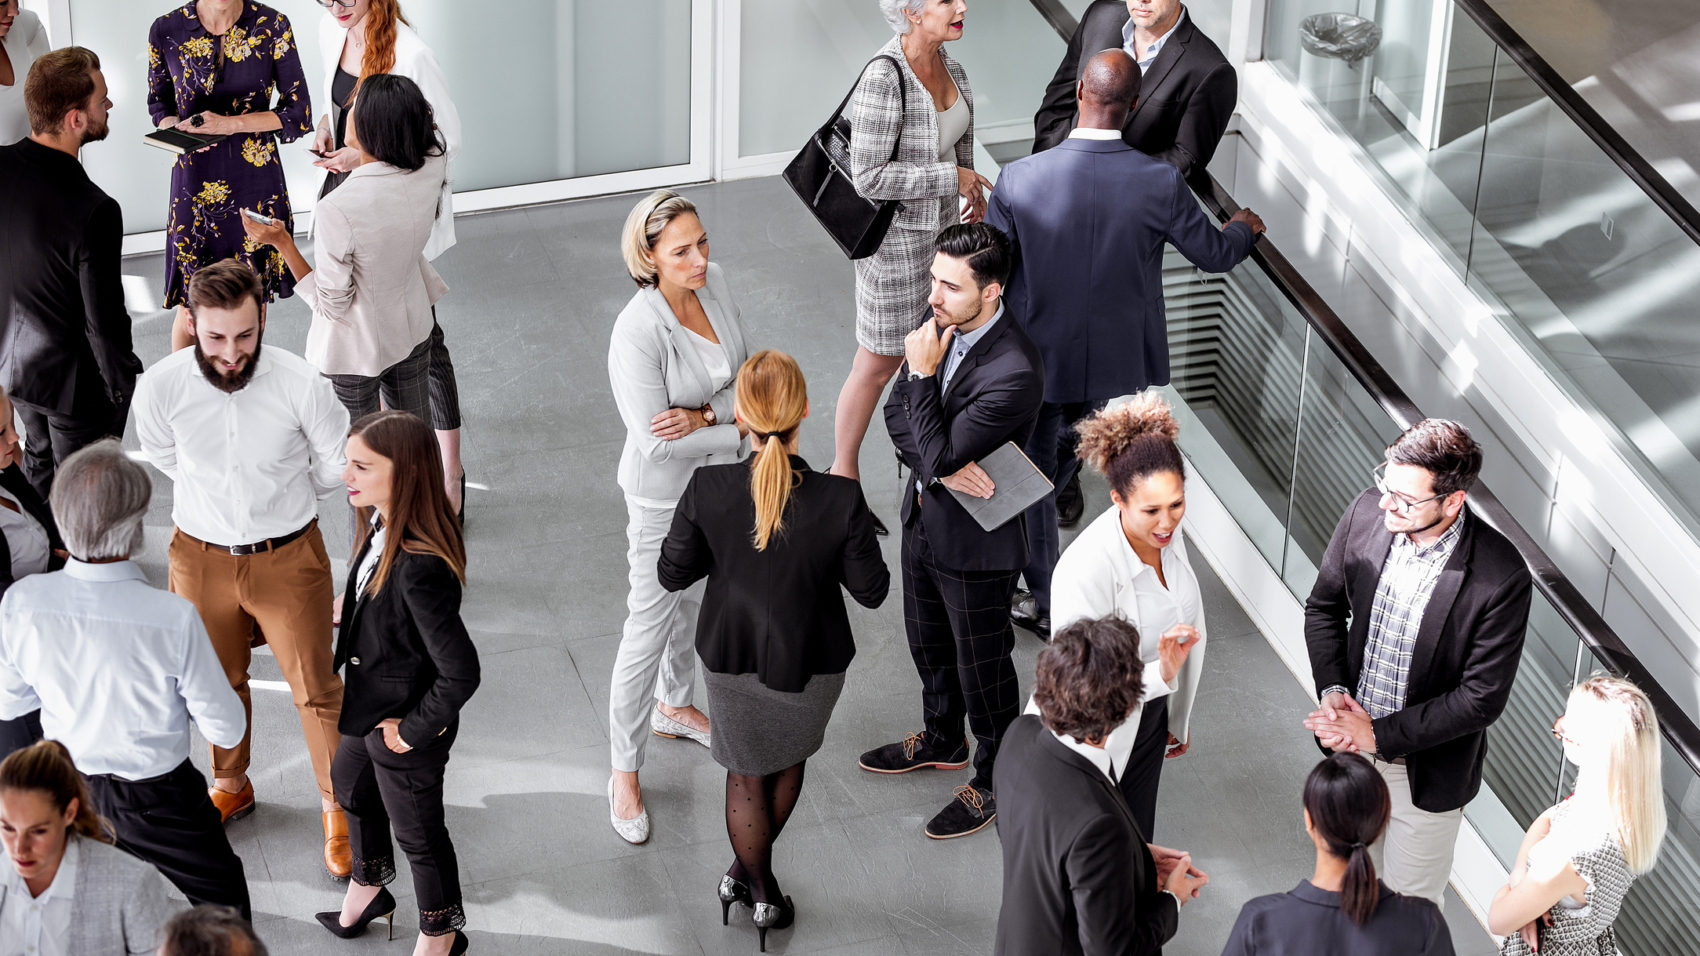 Business People at a Conference Event